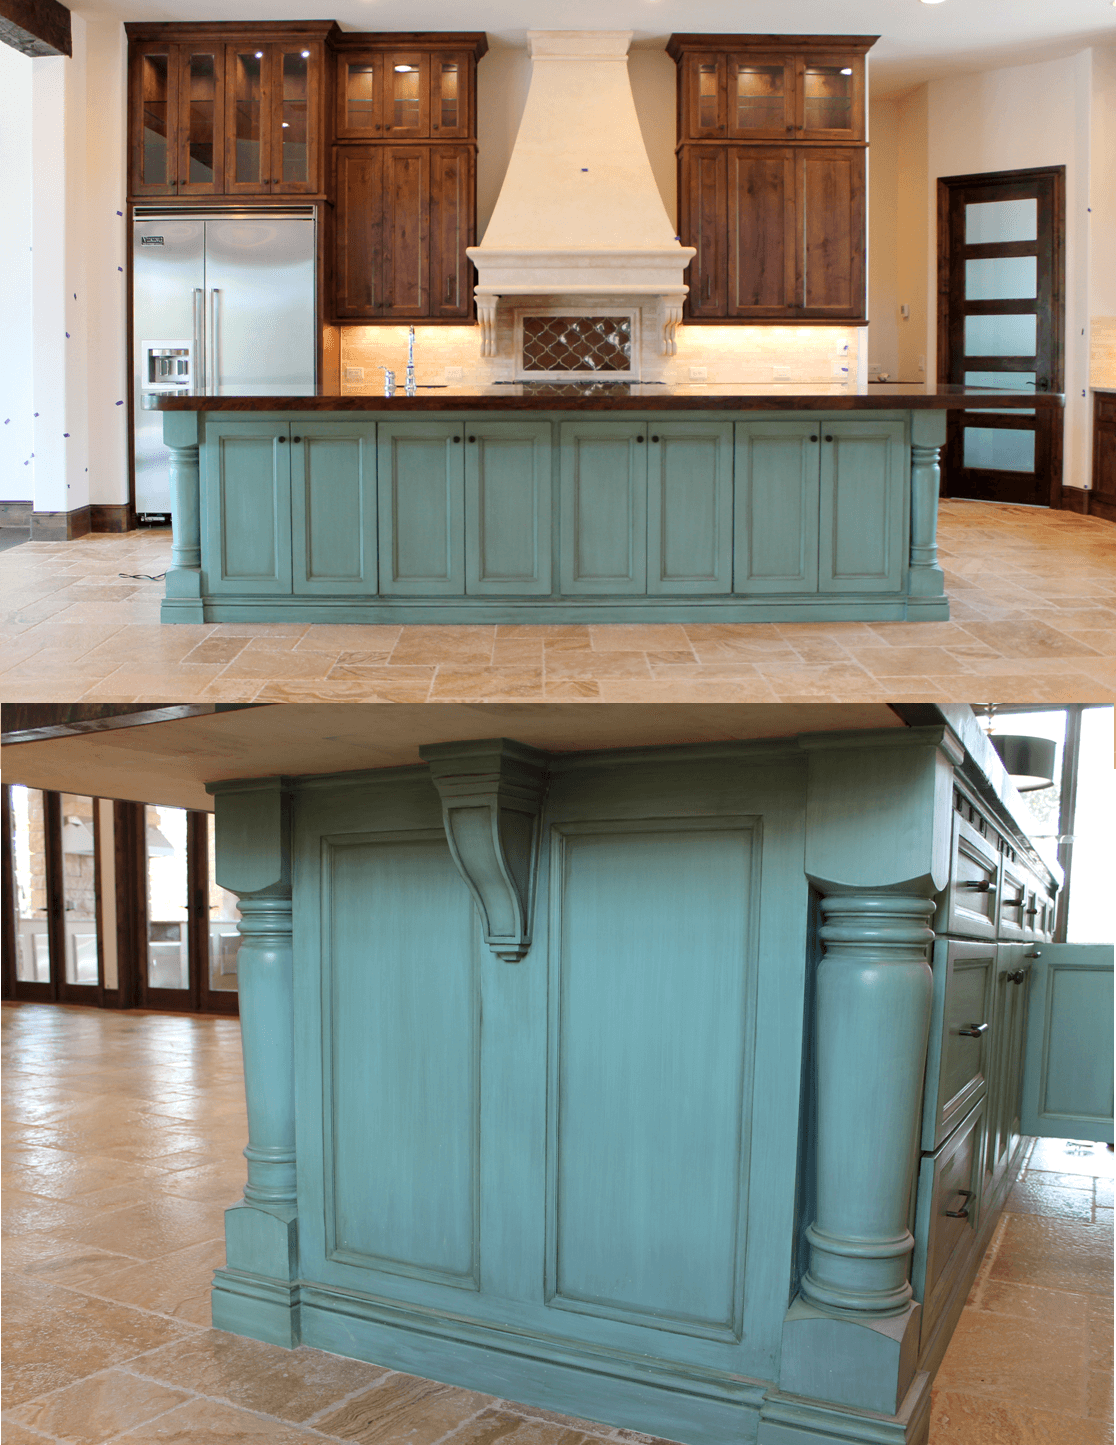 51+ Unique Kitchen Cabinet Ideas to Get You Started | Remodel ...